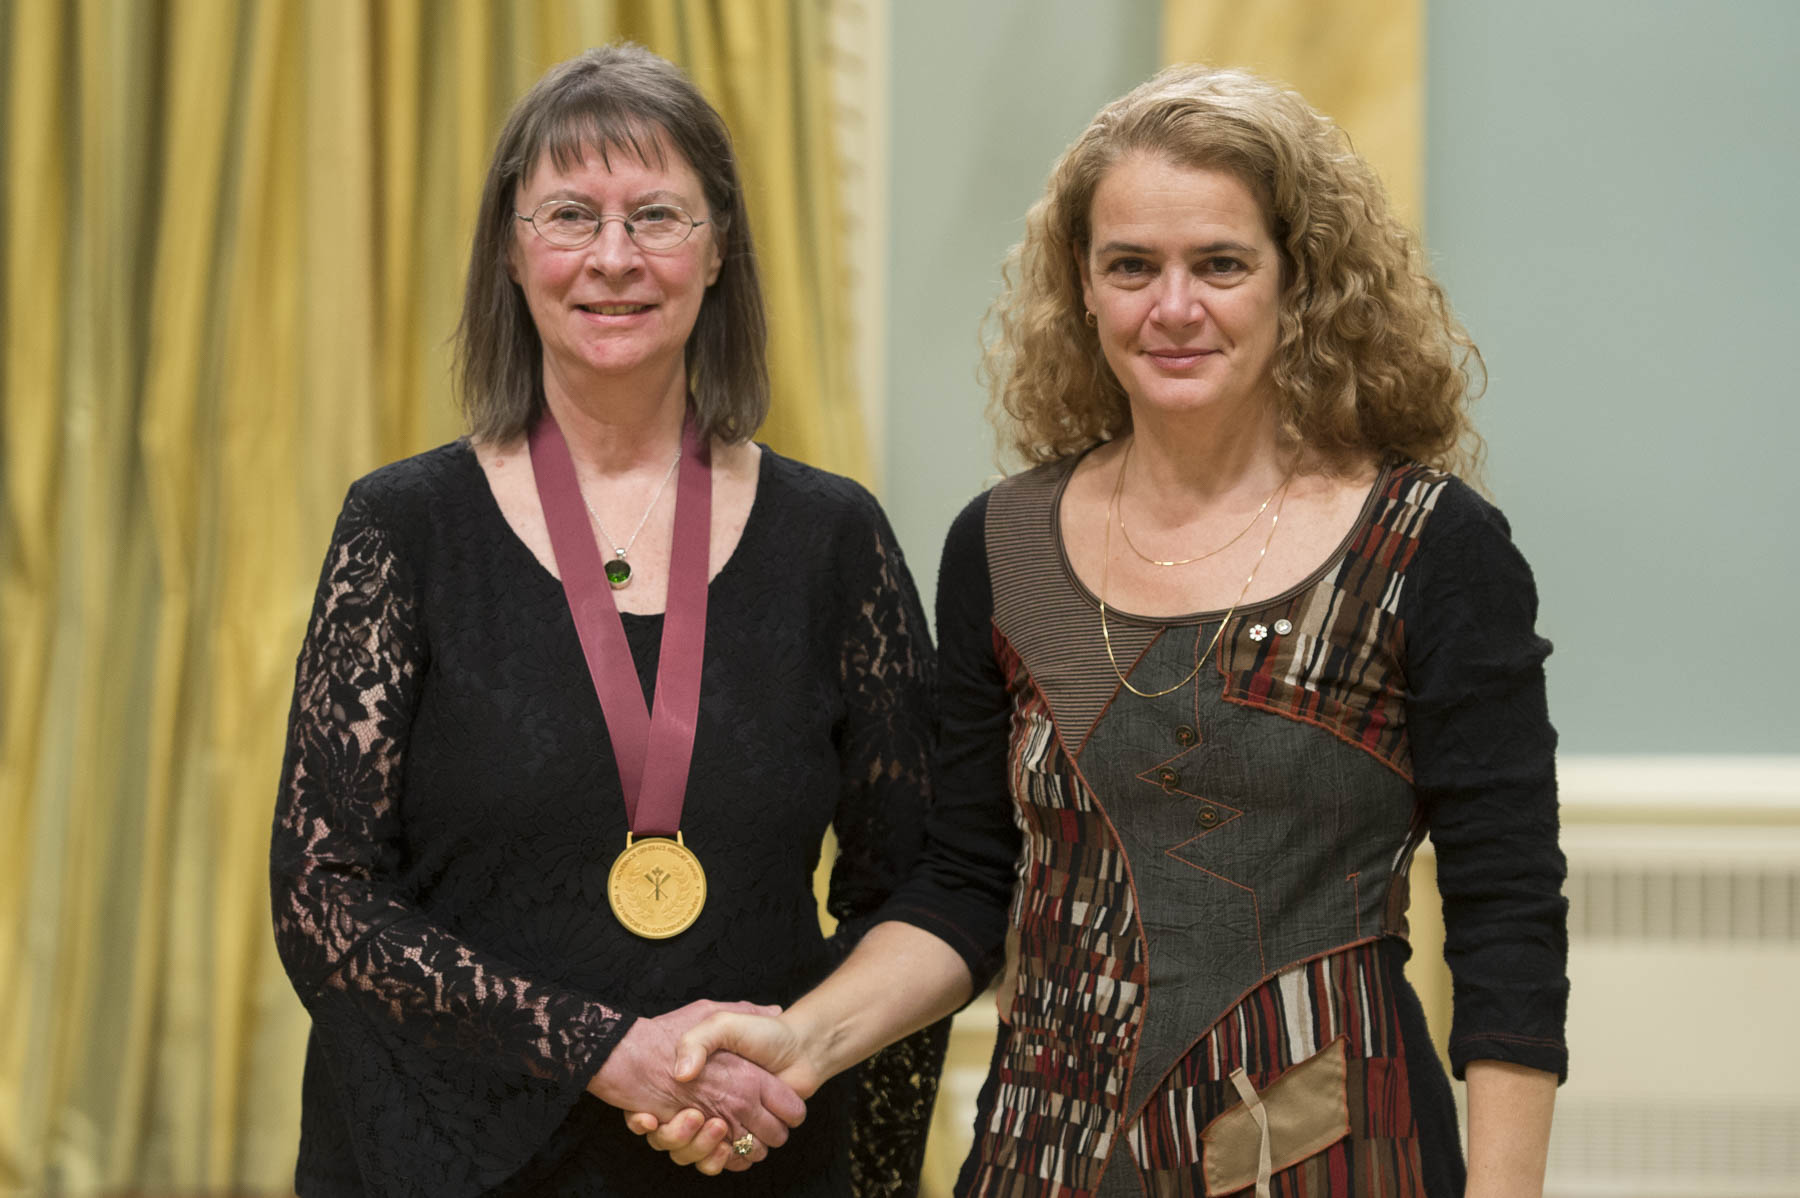 Sarah Carter from the University of Alberta in Edmonton won the Governor General's History Award for Scholarly Research (Sir John A. Macdonald Prize) for her book Imperial Plots: Women, Land, and the Spadework of British Colonialism on the Canadian Prairies.